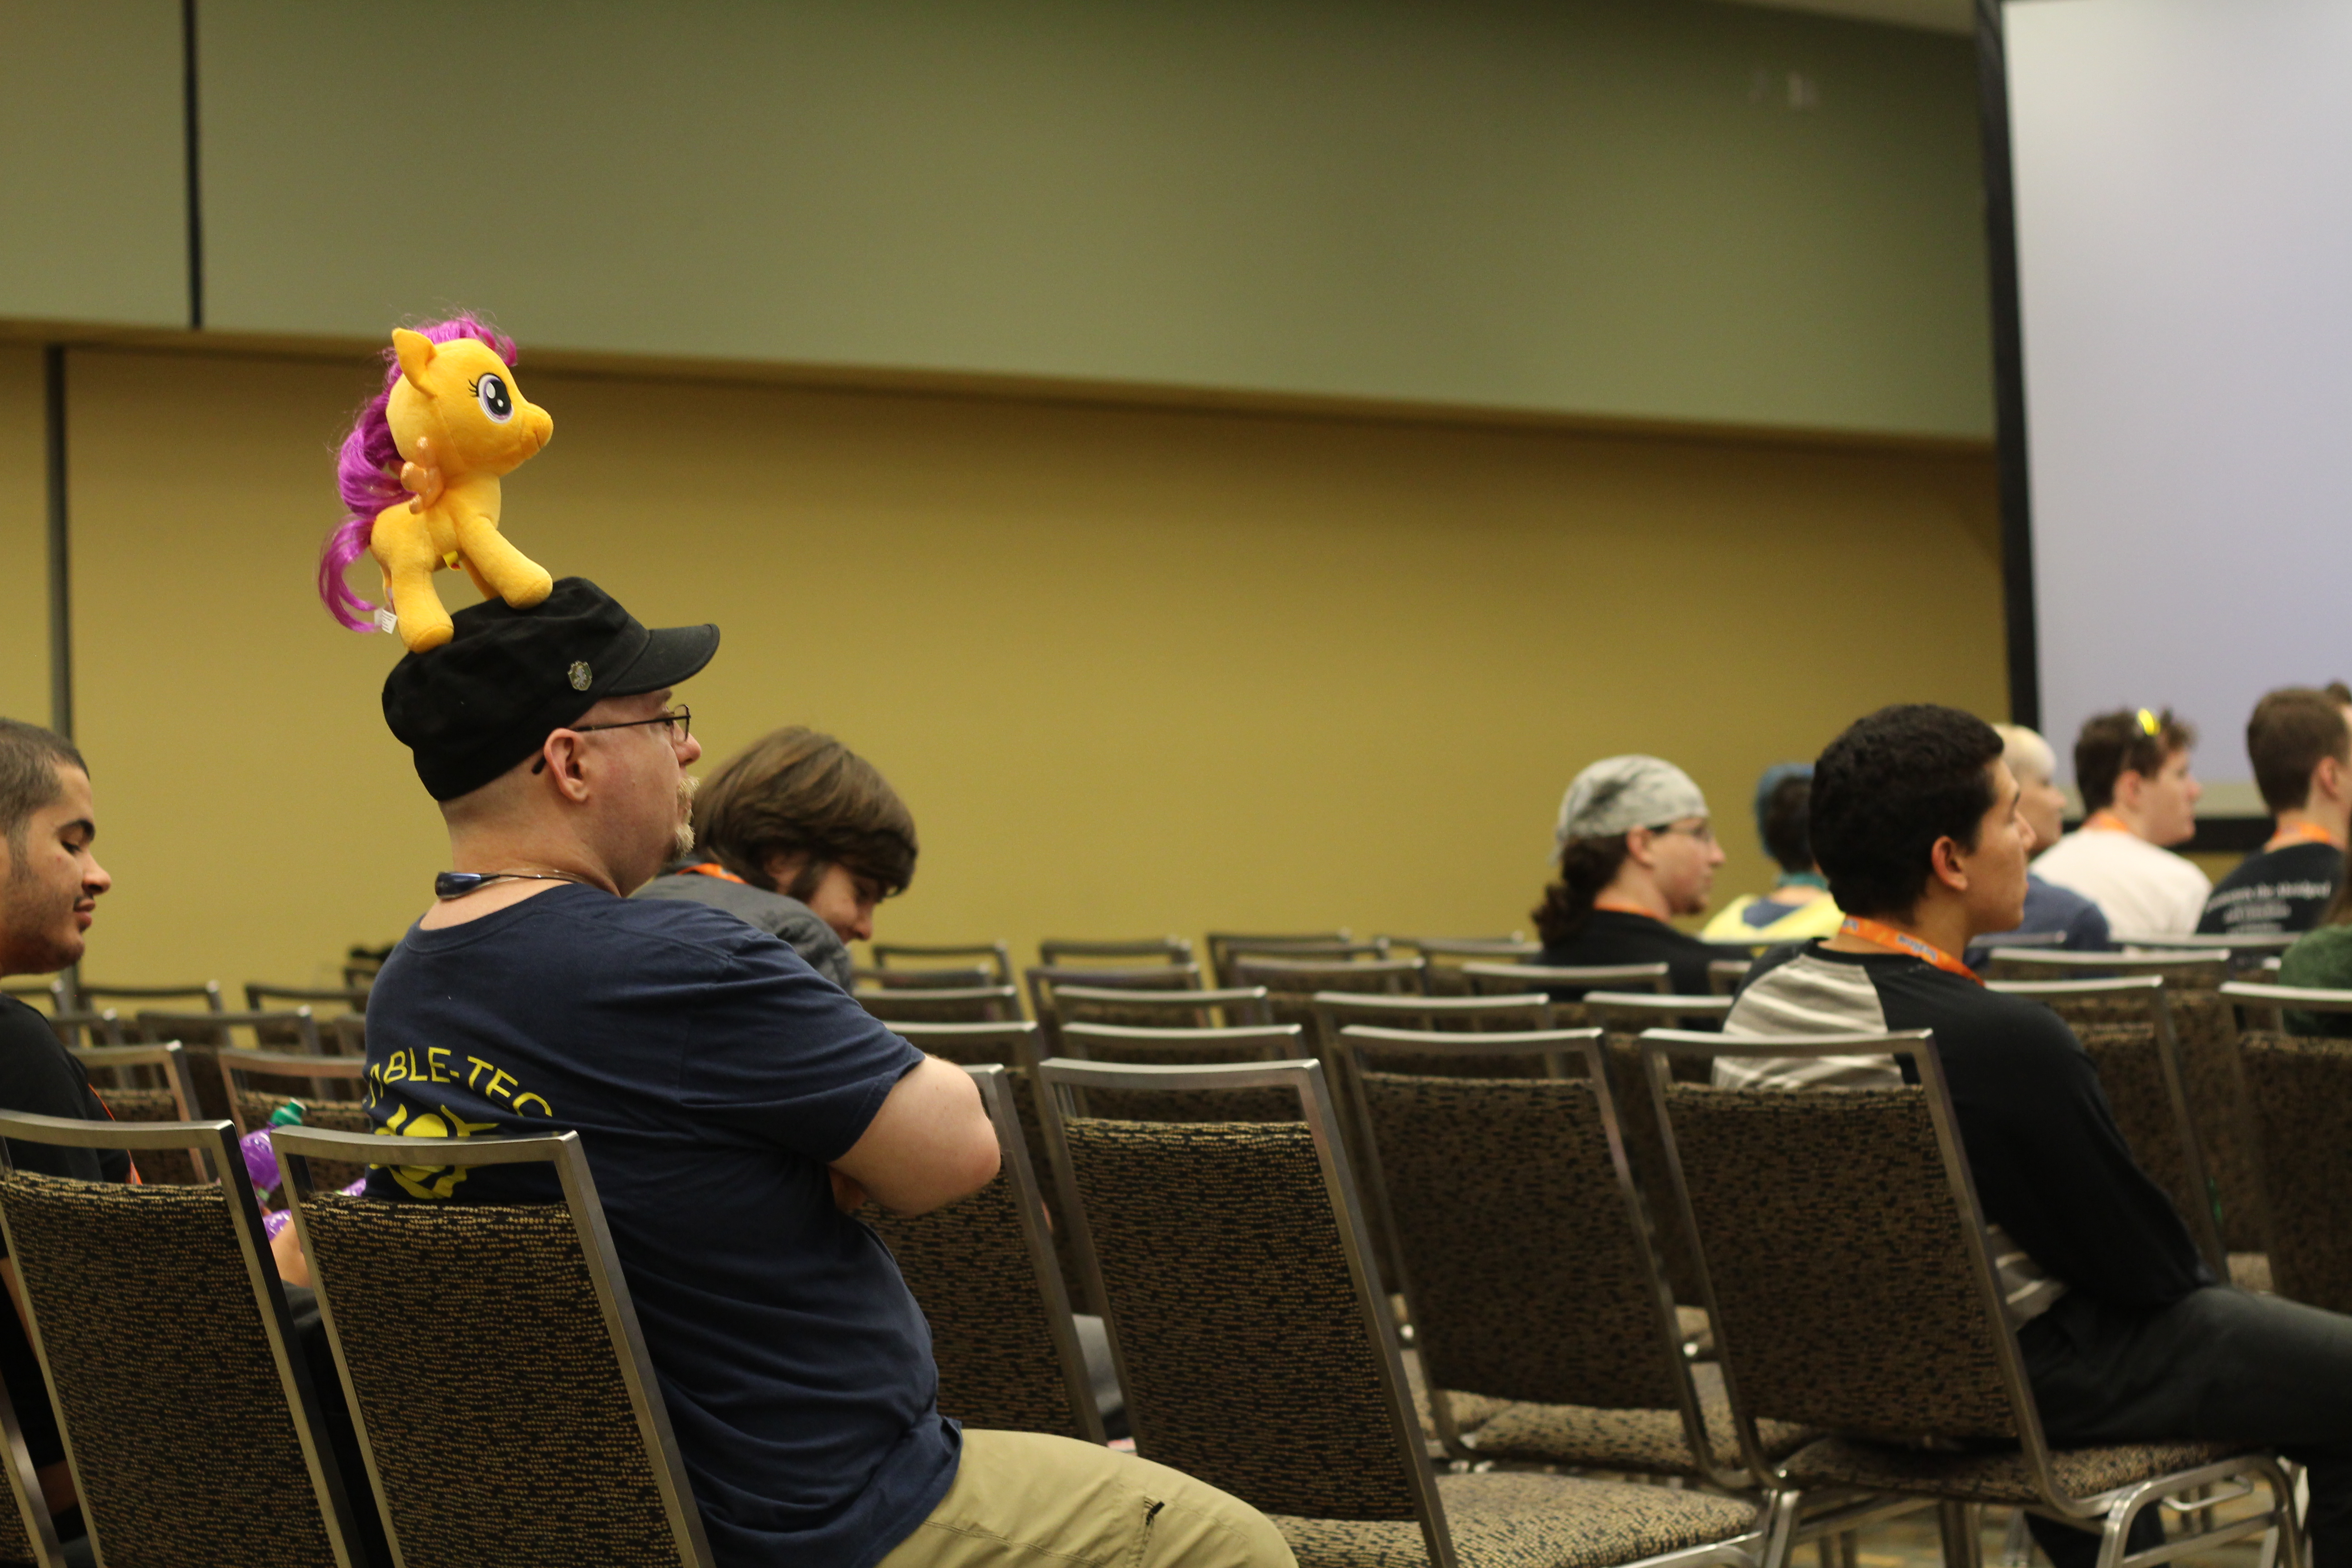 Friendship was magic: How Bronies are preparing for the end of My Little Pony